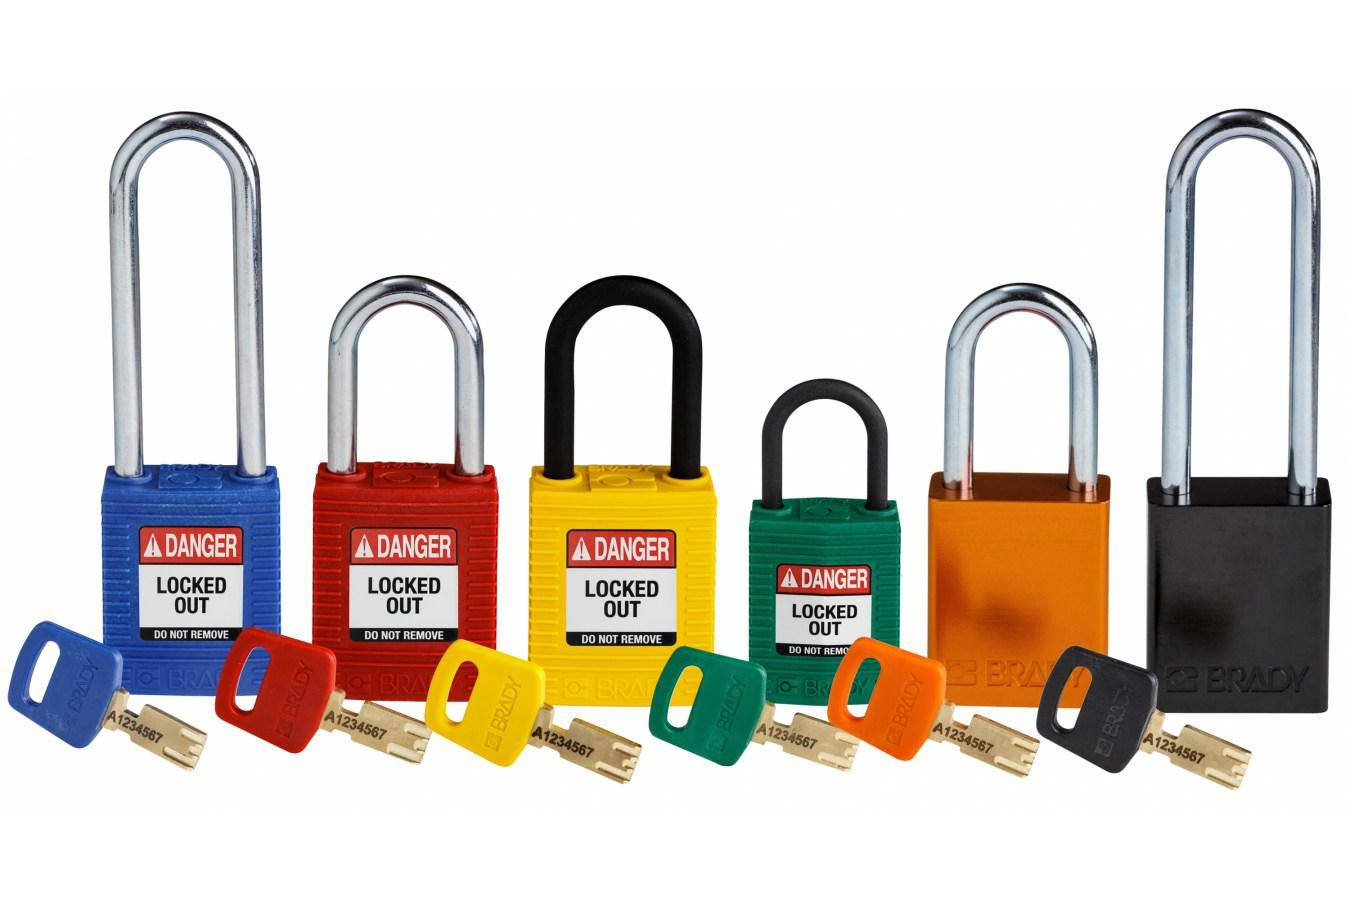 New SafeKey Padlock: the safest padlock for Lockout/Tagout